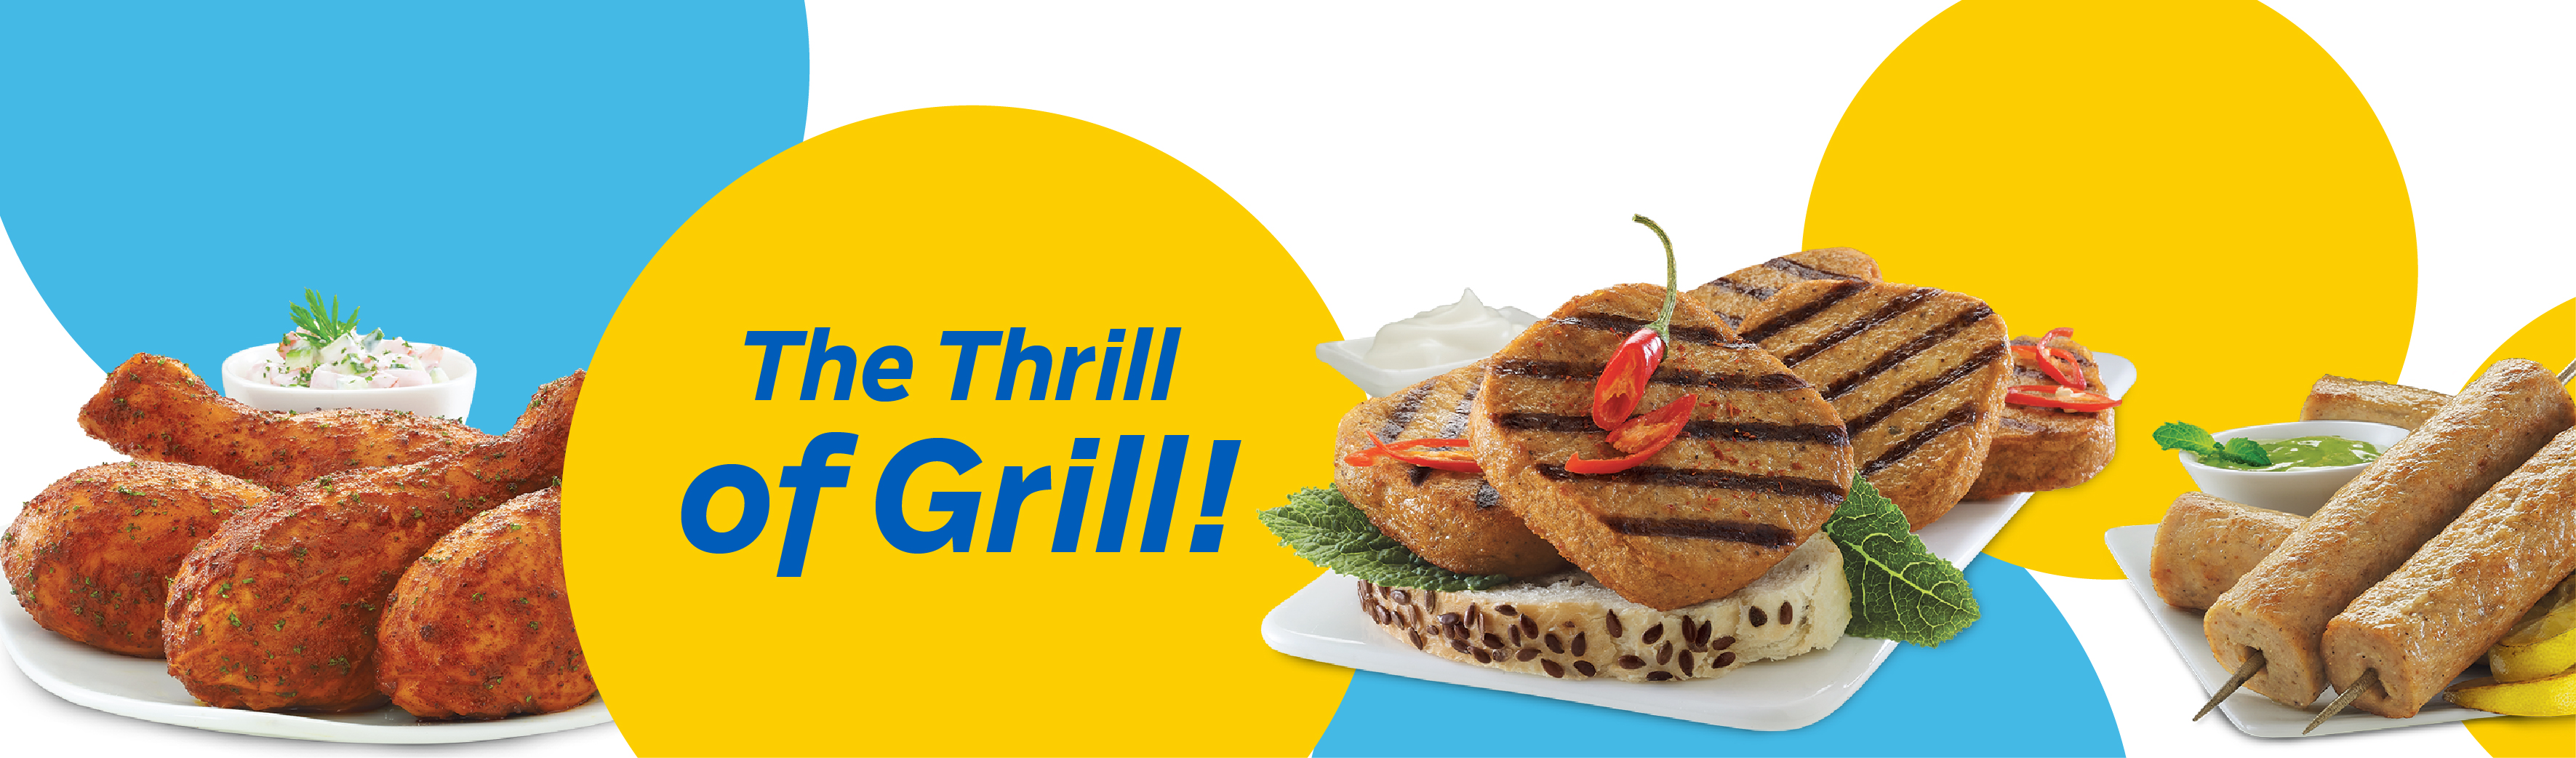 Thrill-of-grill